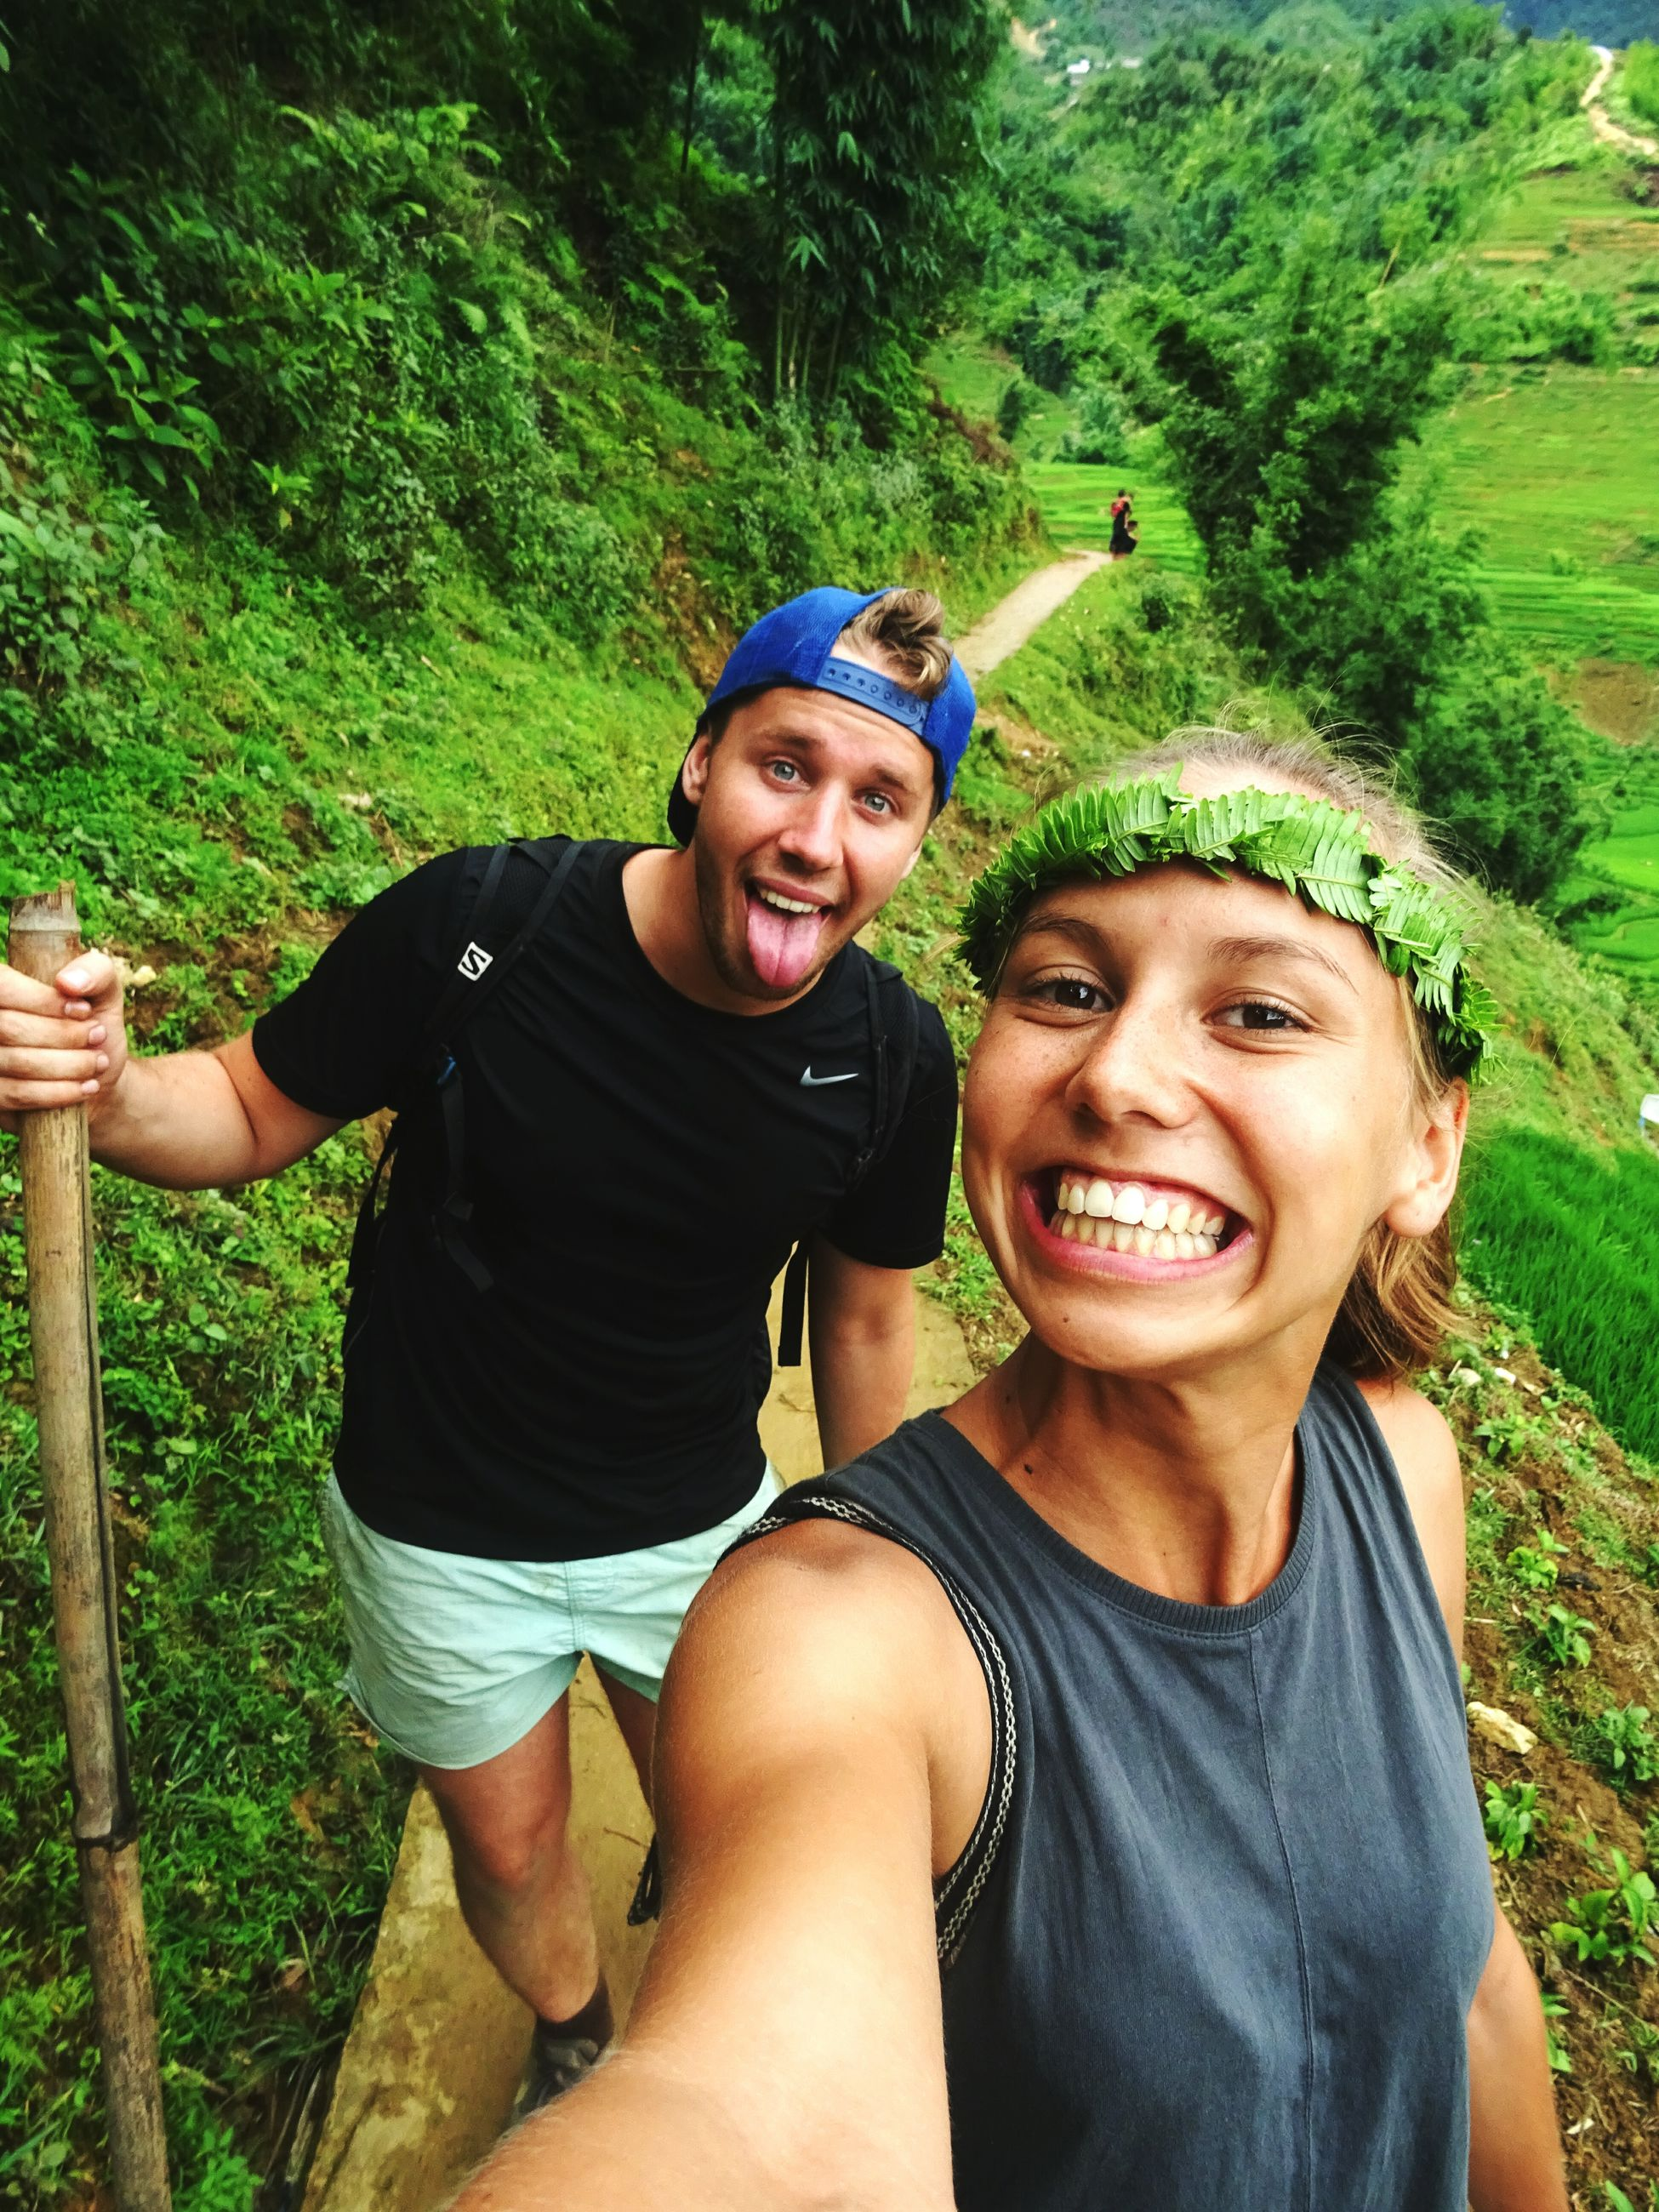 two people, happiness, portrait, looking at camera, smiling, young adult, males, lifestyles, communication, outdoors, togetherness, people, adults only, cheerful, men, adult, friendship, young women, day